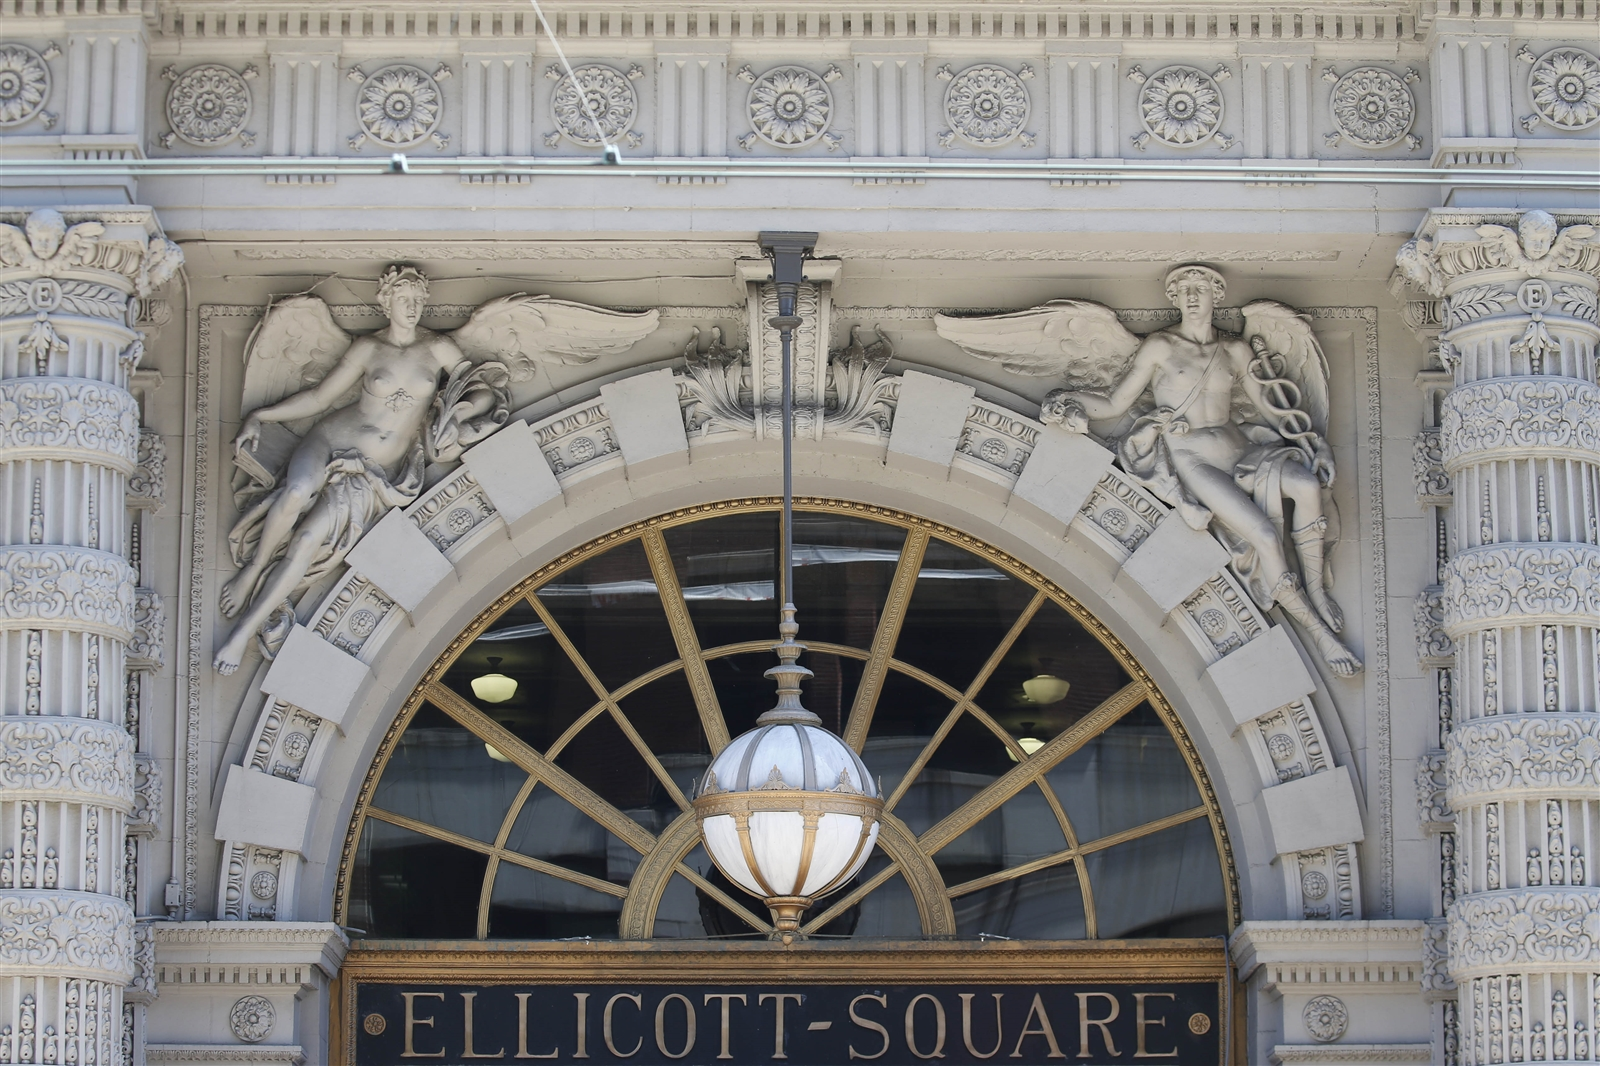 1005514973-ellicott-square-gee36